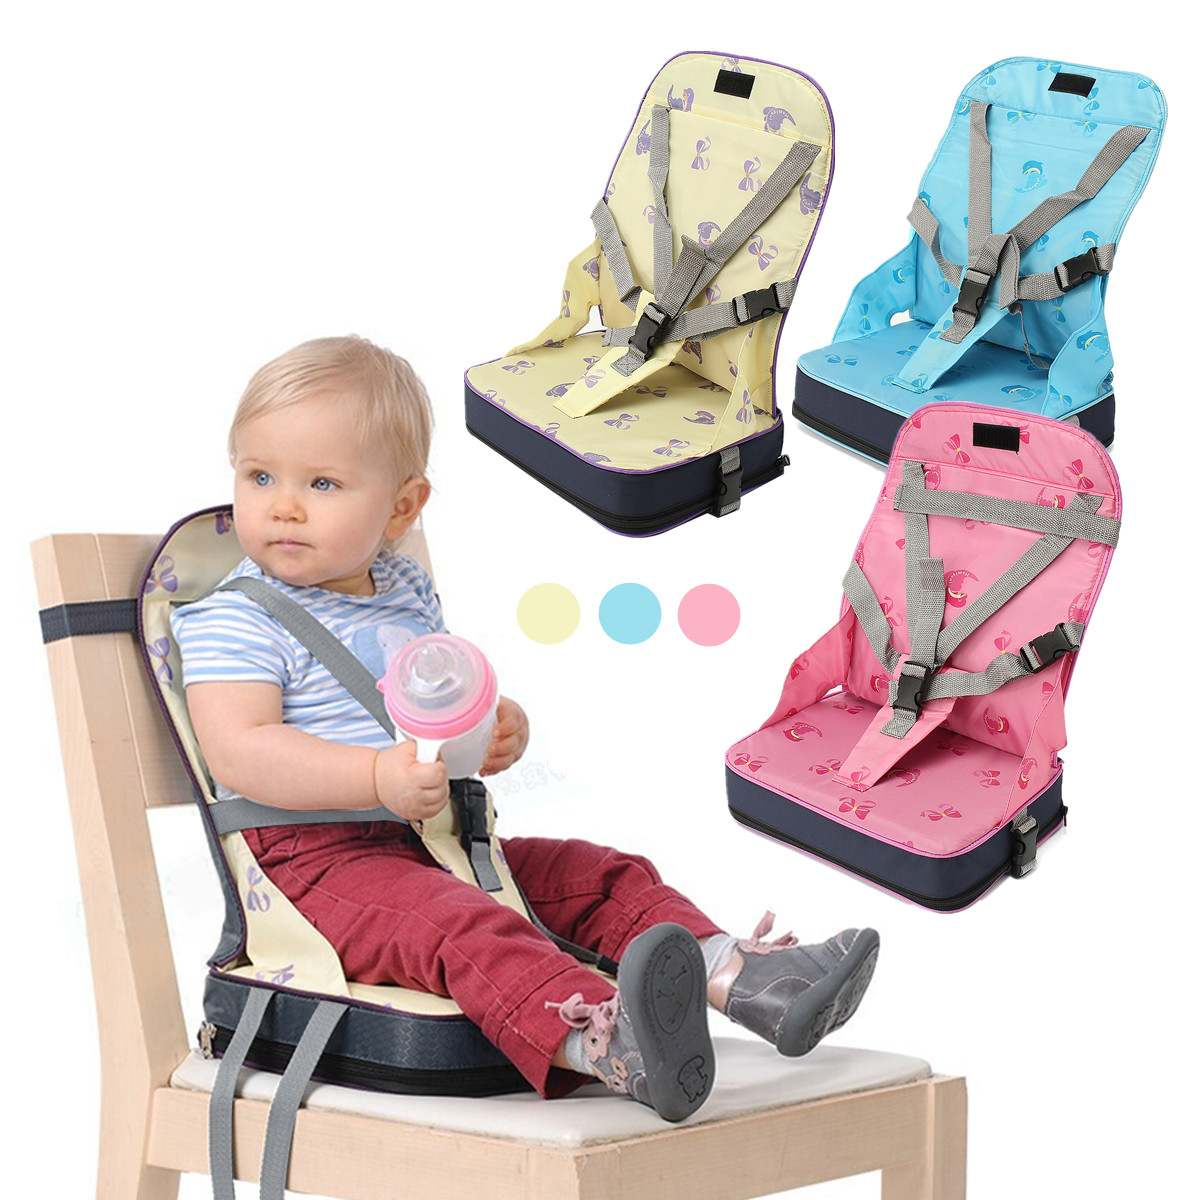 Baby Toddler Foldable Dining High Chair Feeding Booster Seat With Harness Safety Pink/Yellow/Blue Fiber Cloth+Nylon+Sponge